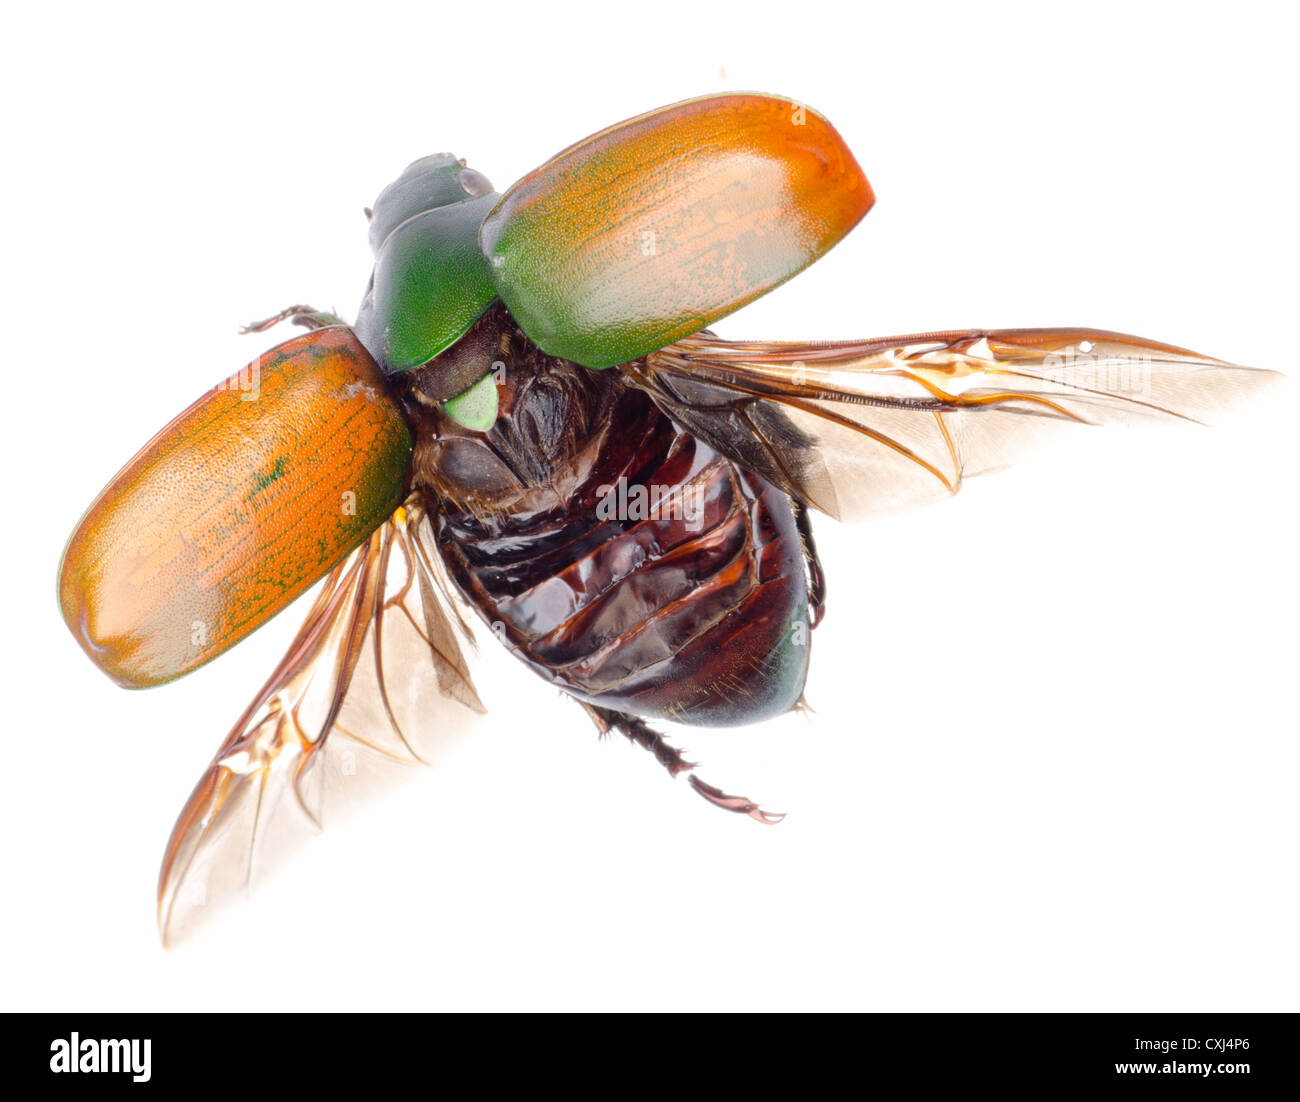 flying insect scarab beetle - Stock Image